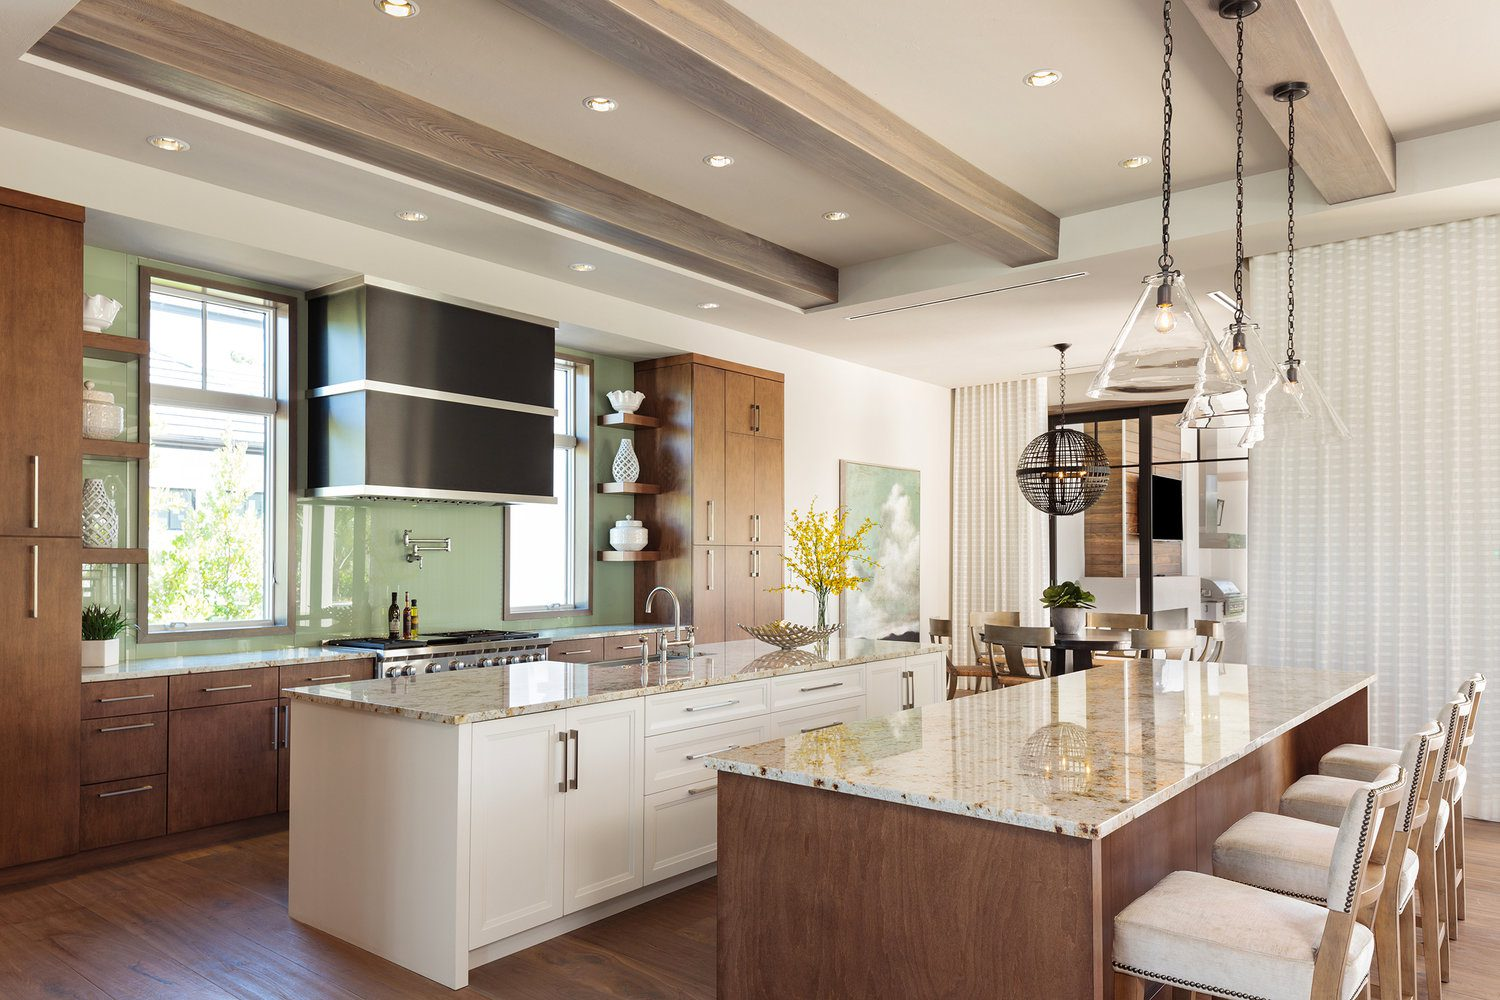 Butcher block countertops with laminate surface